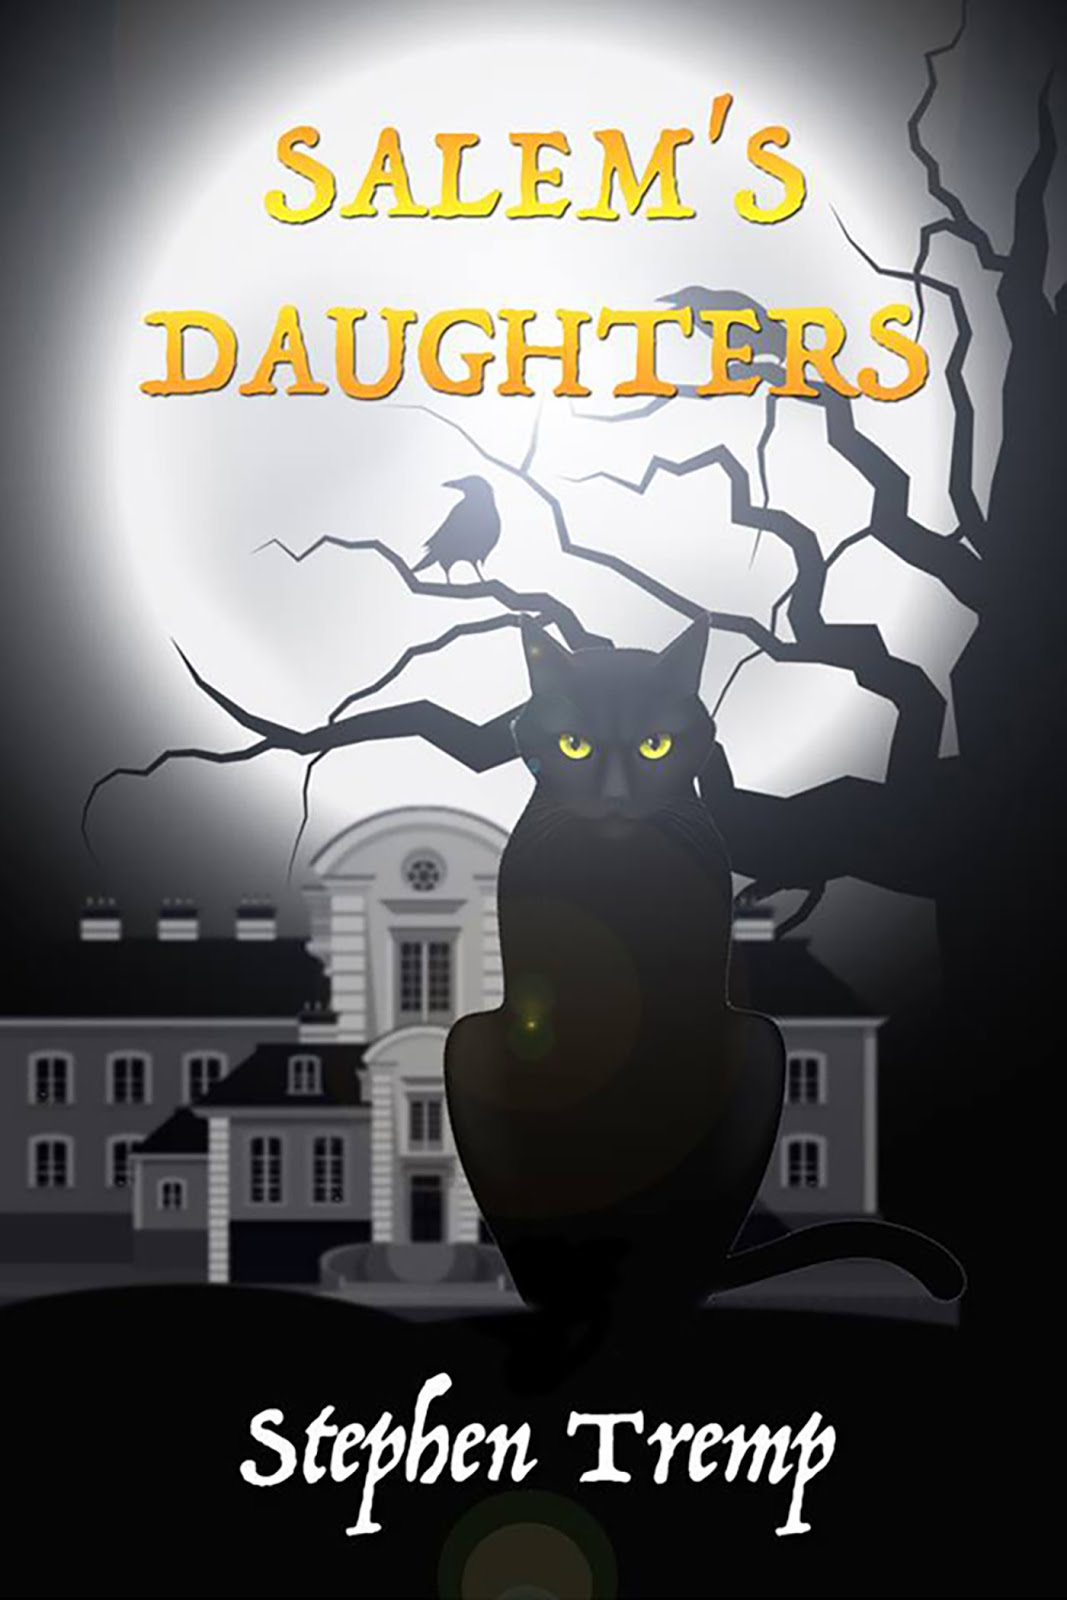 Preview Salem's Daughters